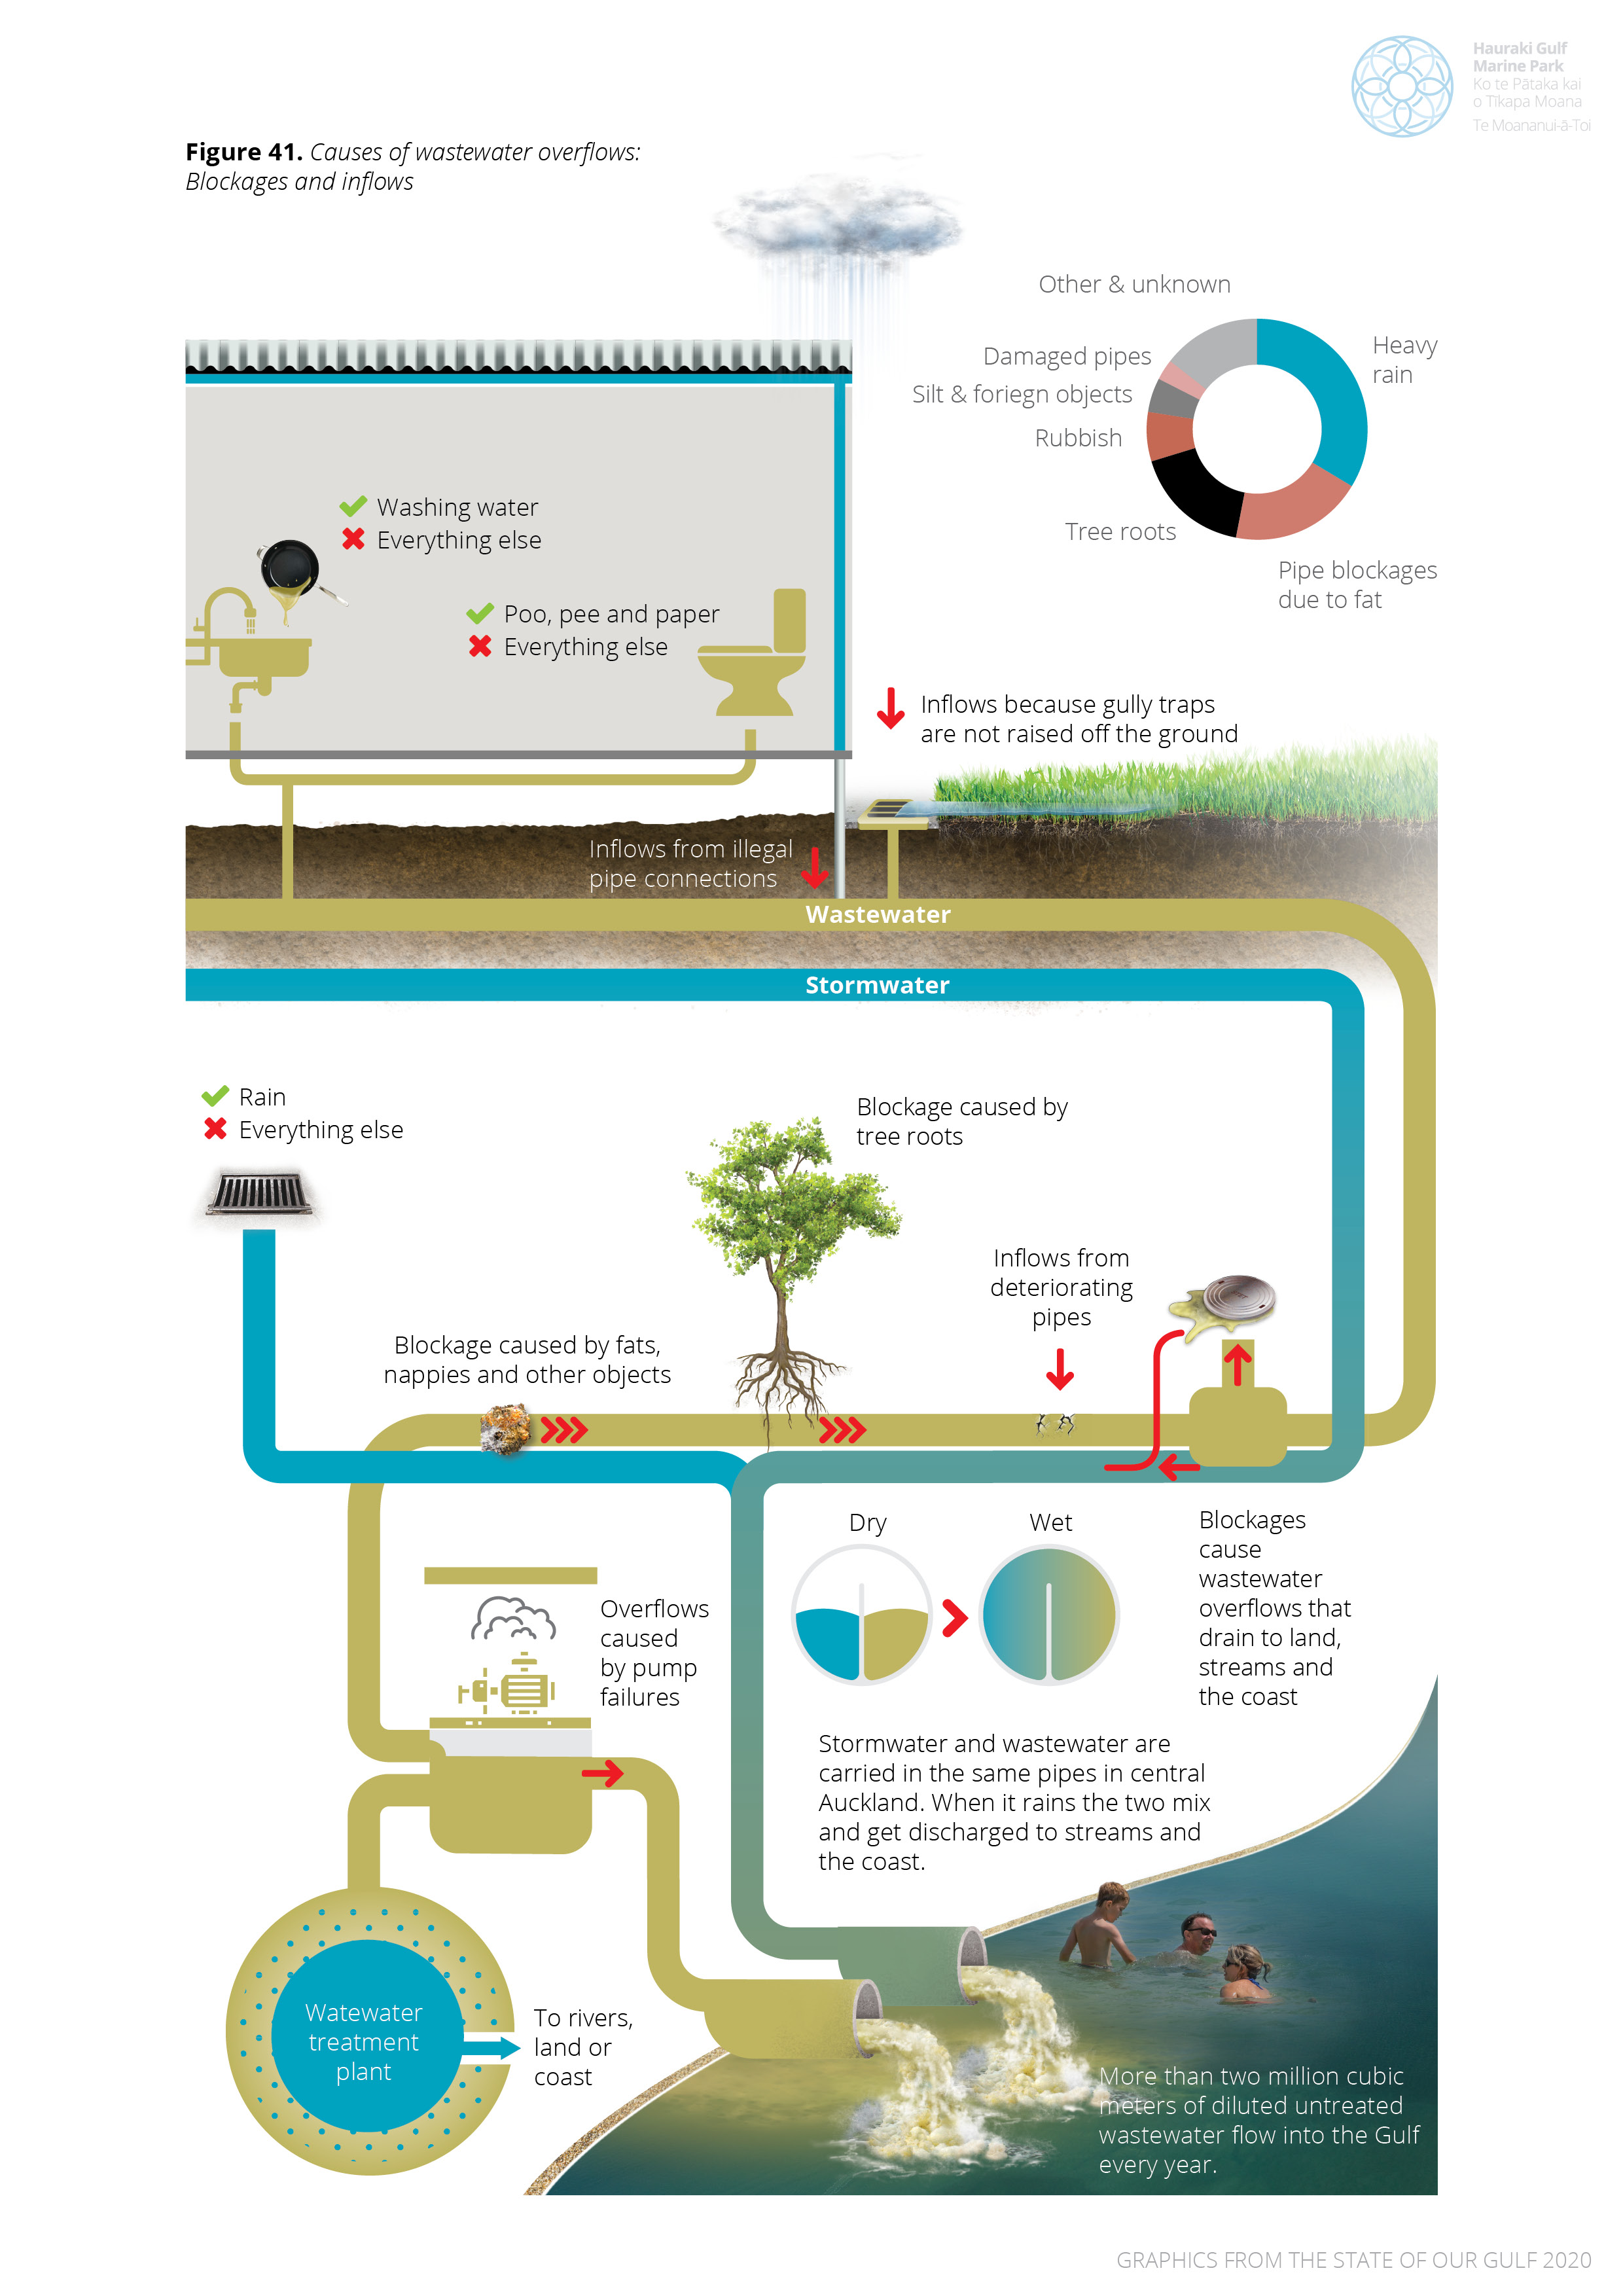 Sources of wastewater overflows